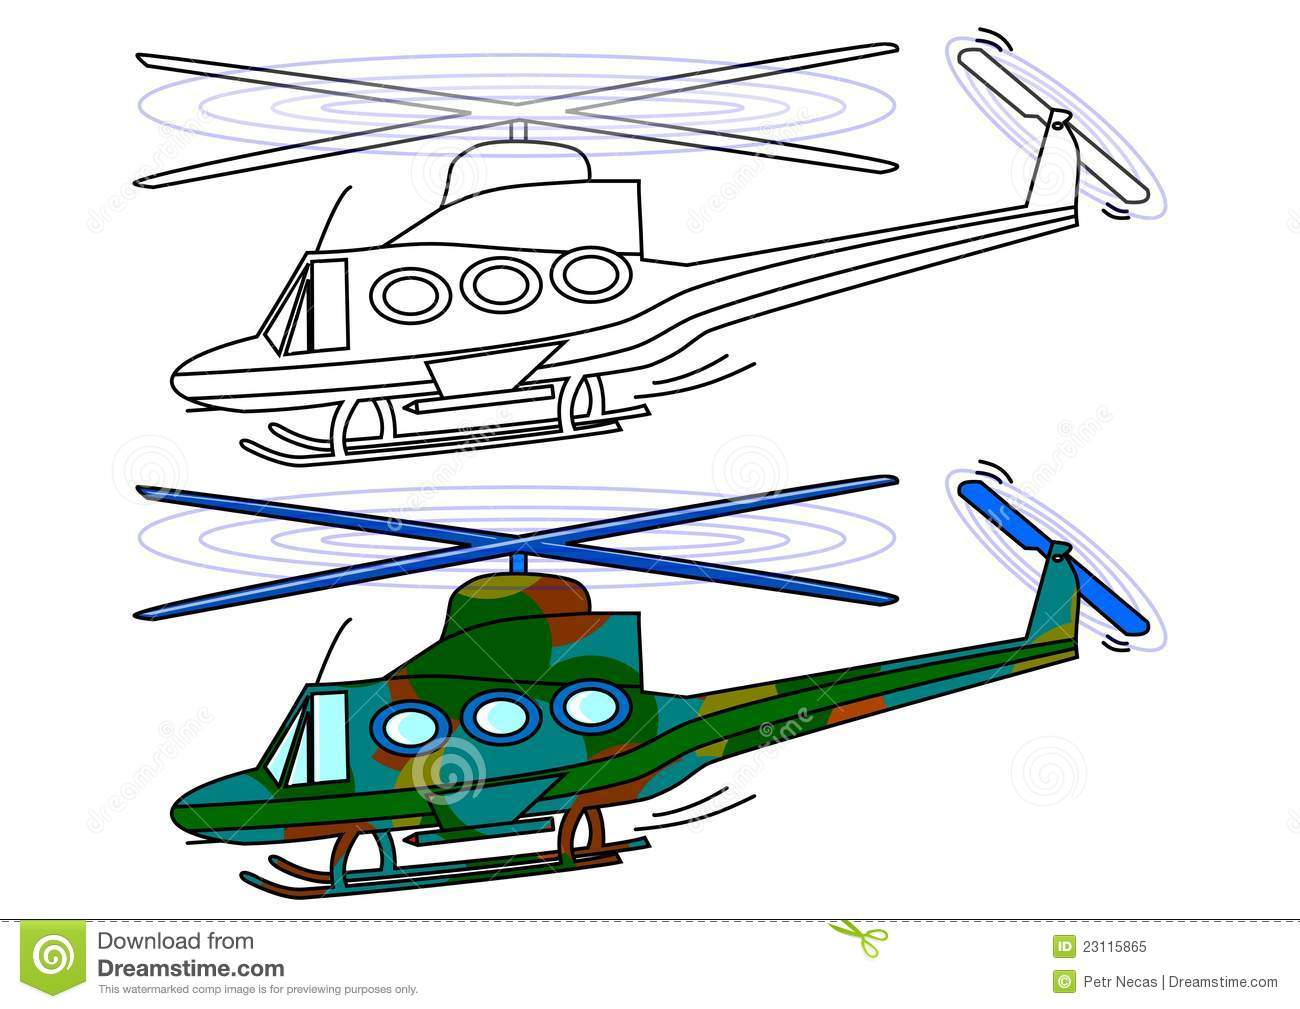 Royalty free stock photo: masked military helicopter - coloring book